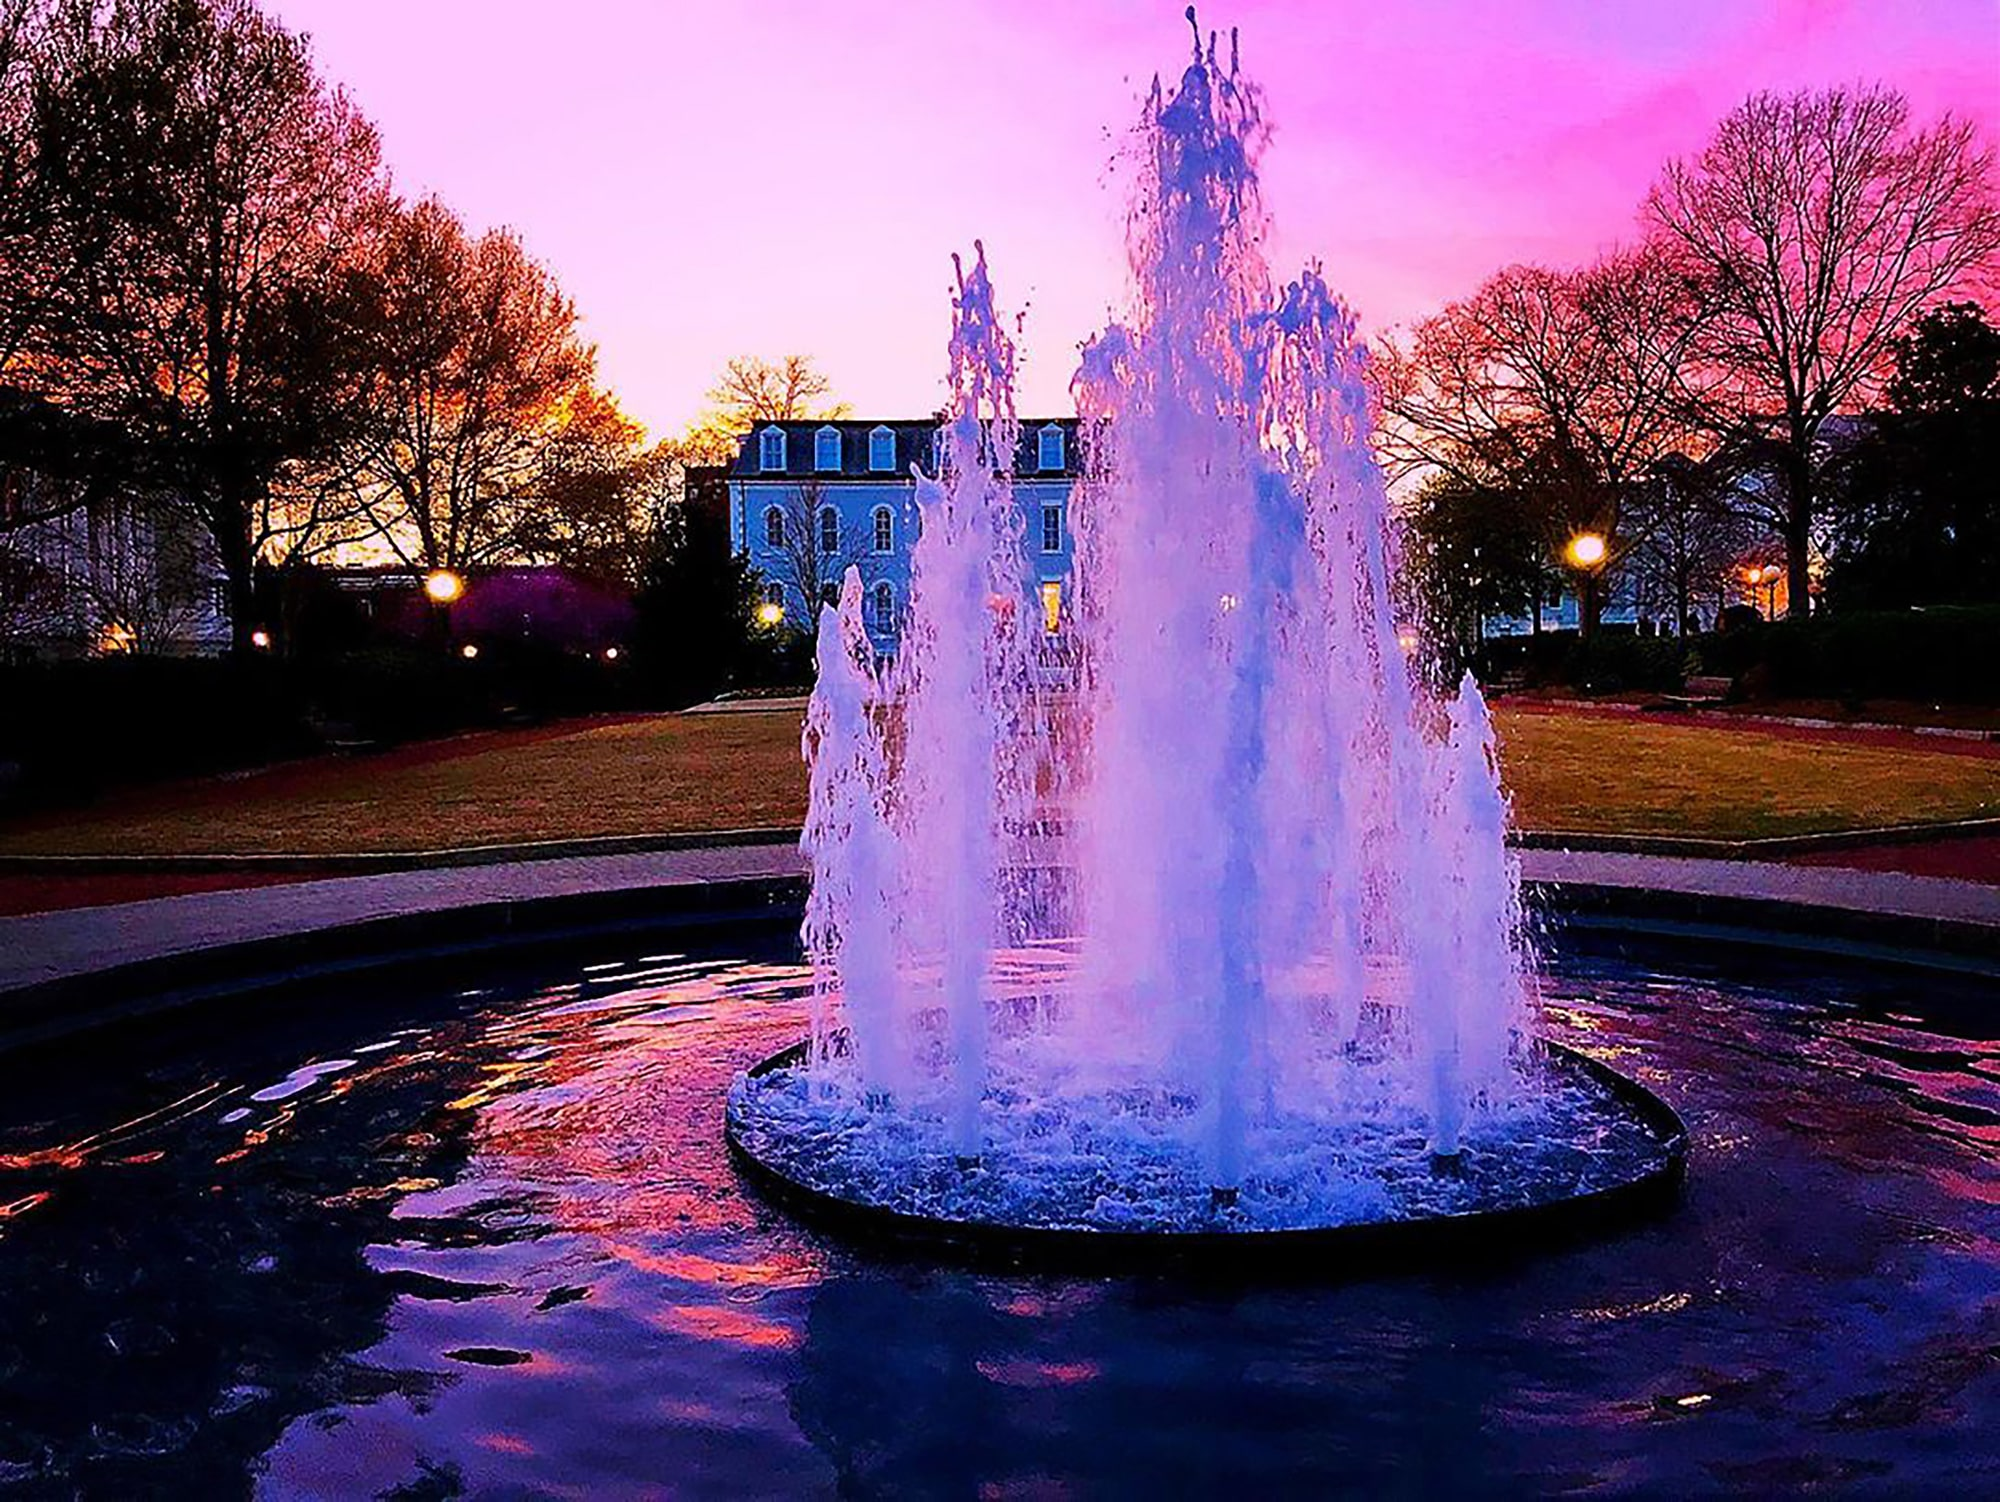 Herty Field at UGA in Athens at sunset. Photo by @amandahomeskilly